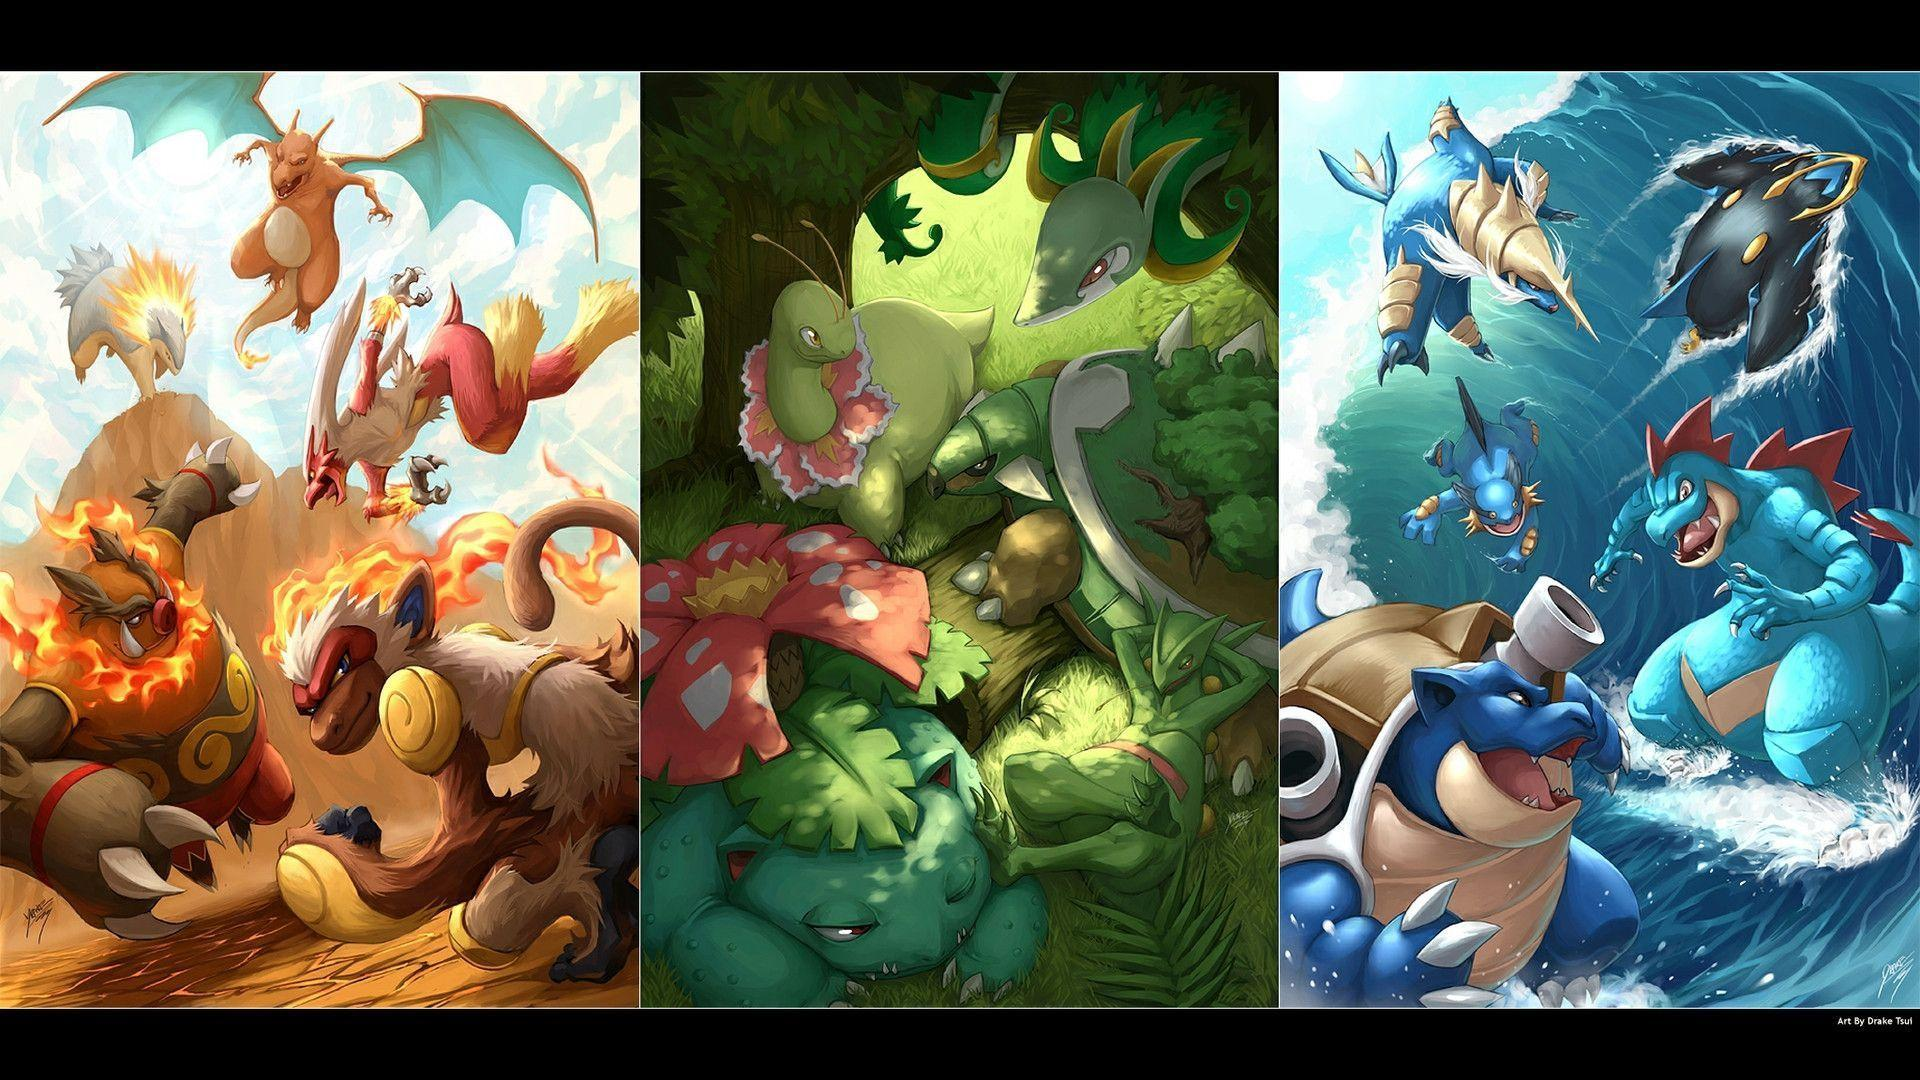 Pokémon HD Wallpapers - Wallpaper Cave Pokemon Wallpaper Hd 1920x1080